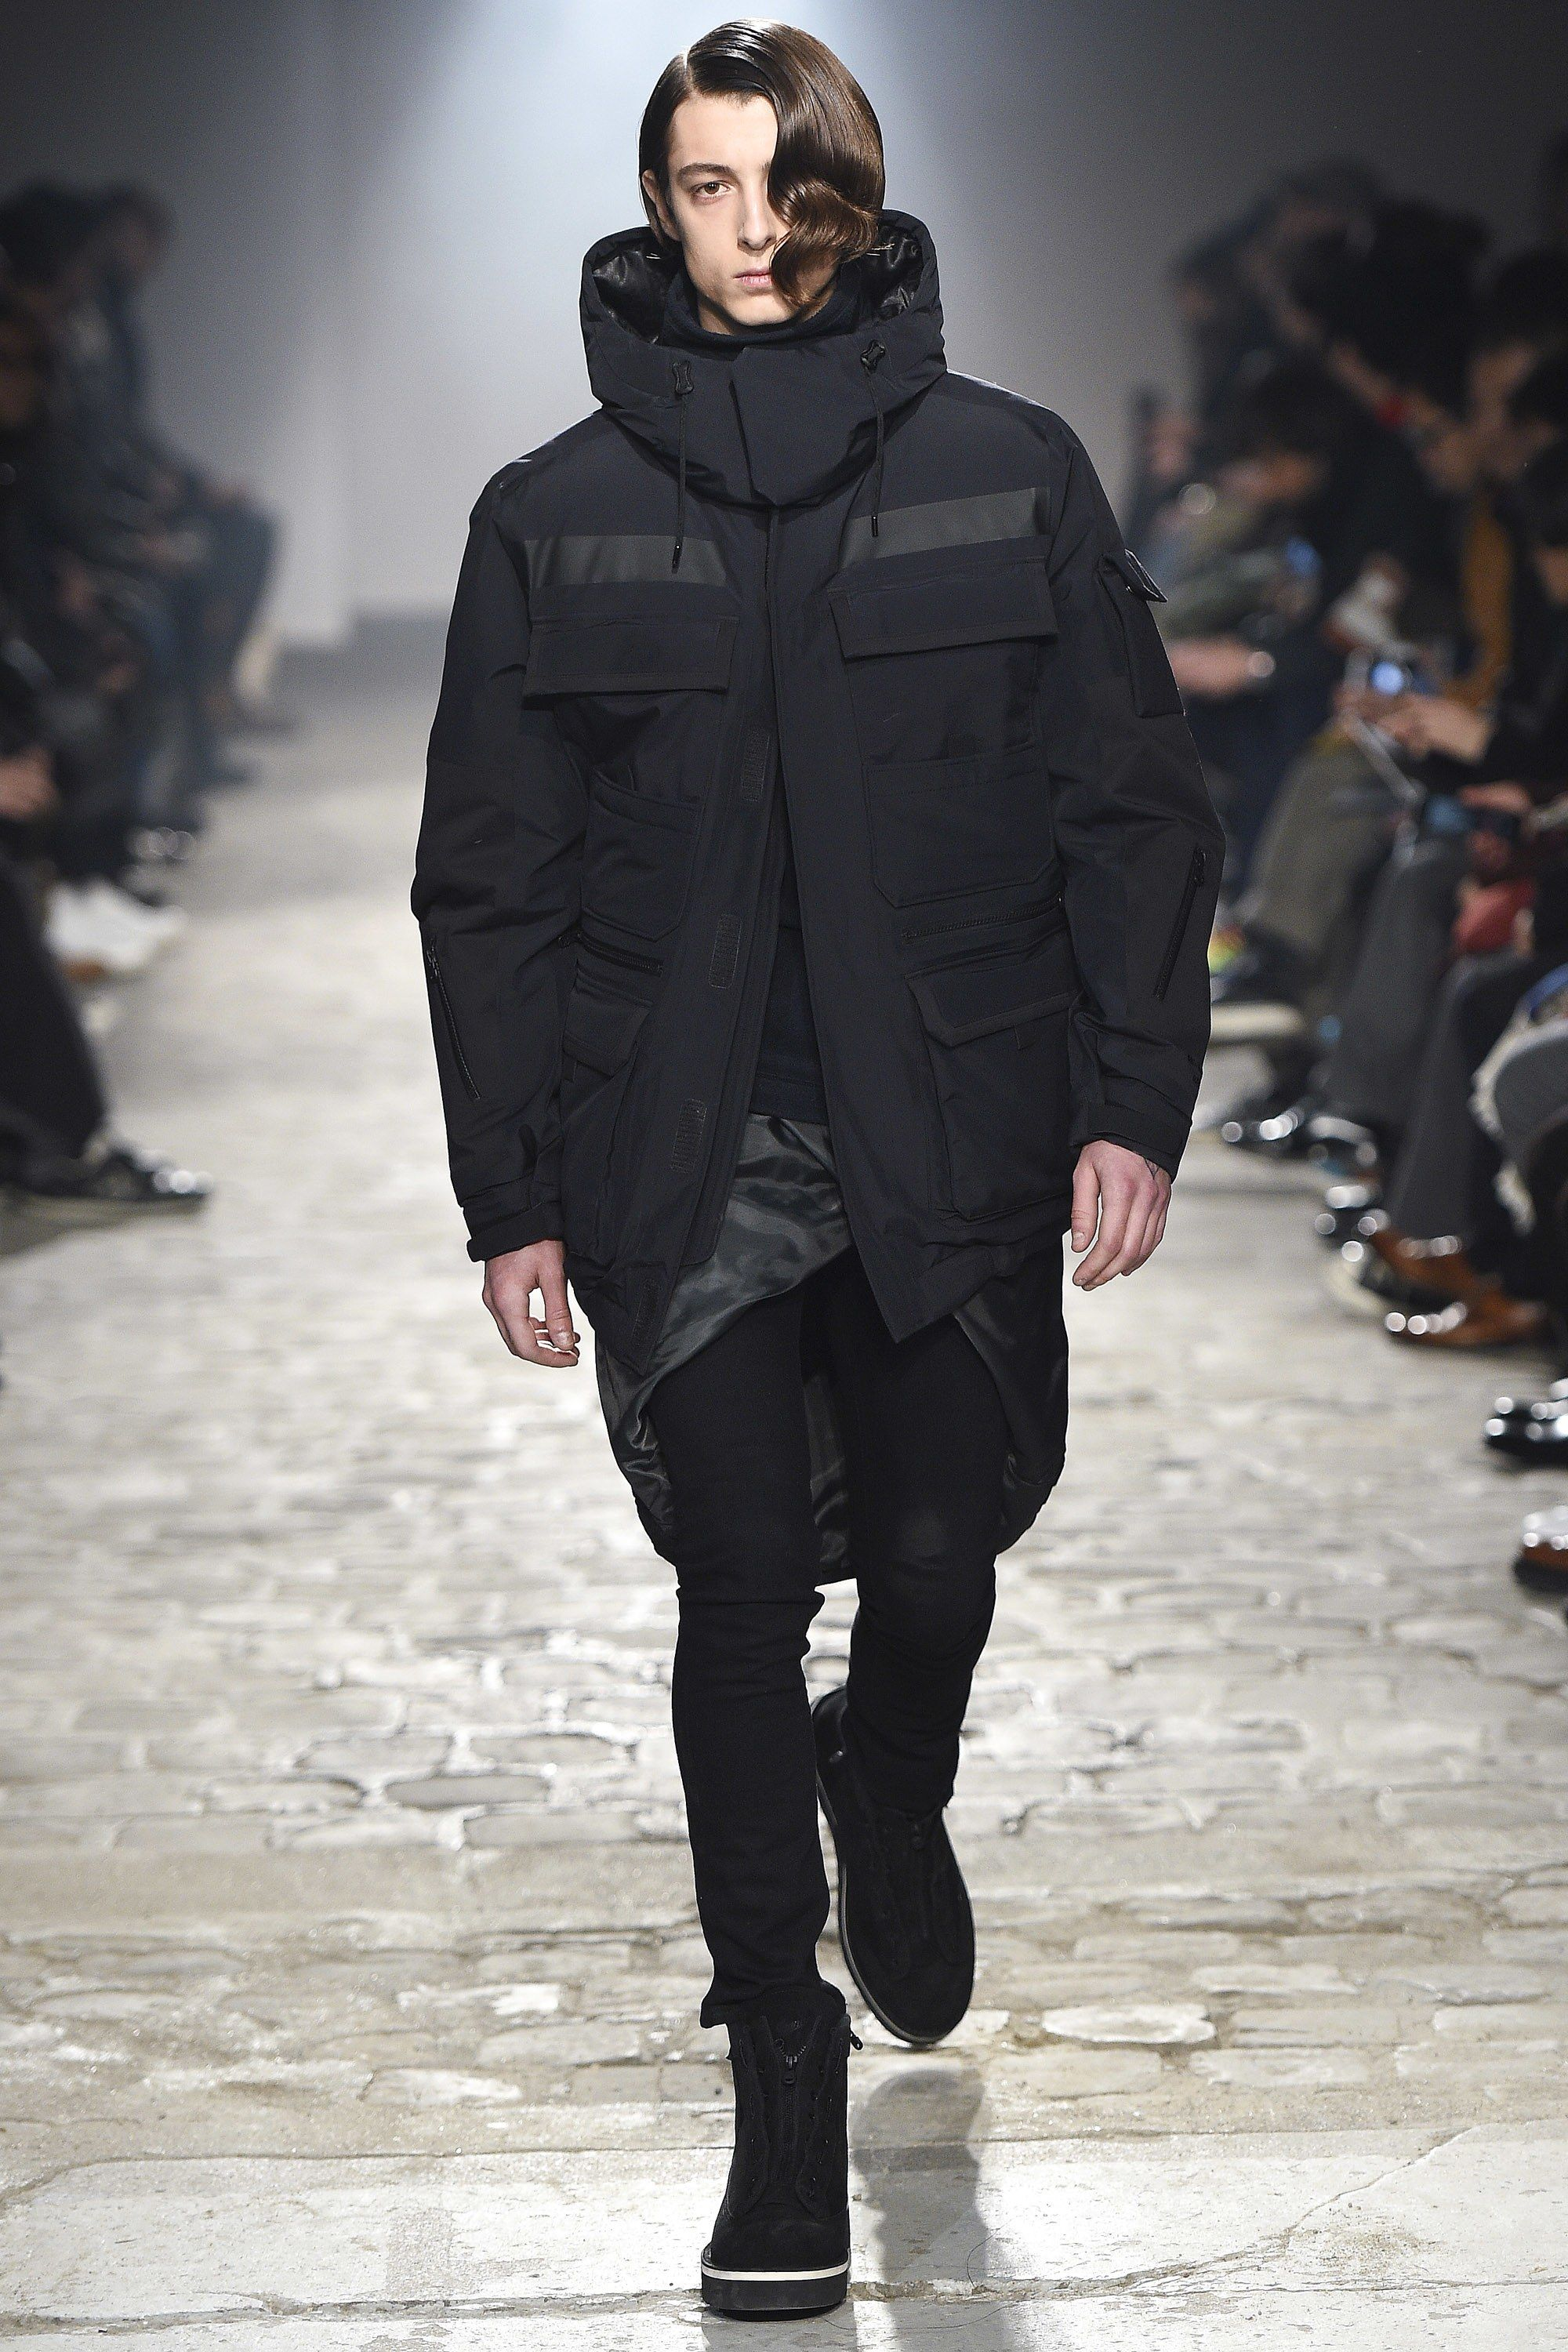 White Mountaineering Fall 2017 Menswear Collection Photos - Vogue